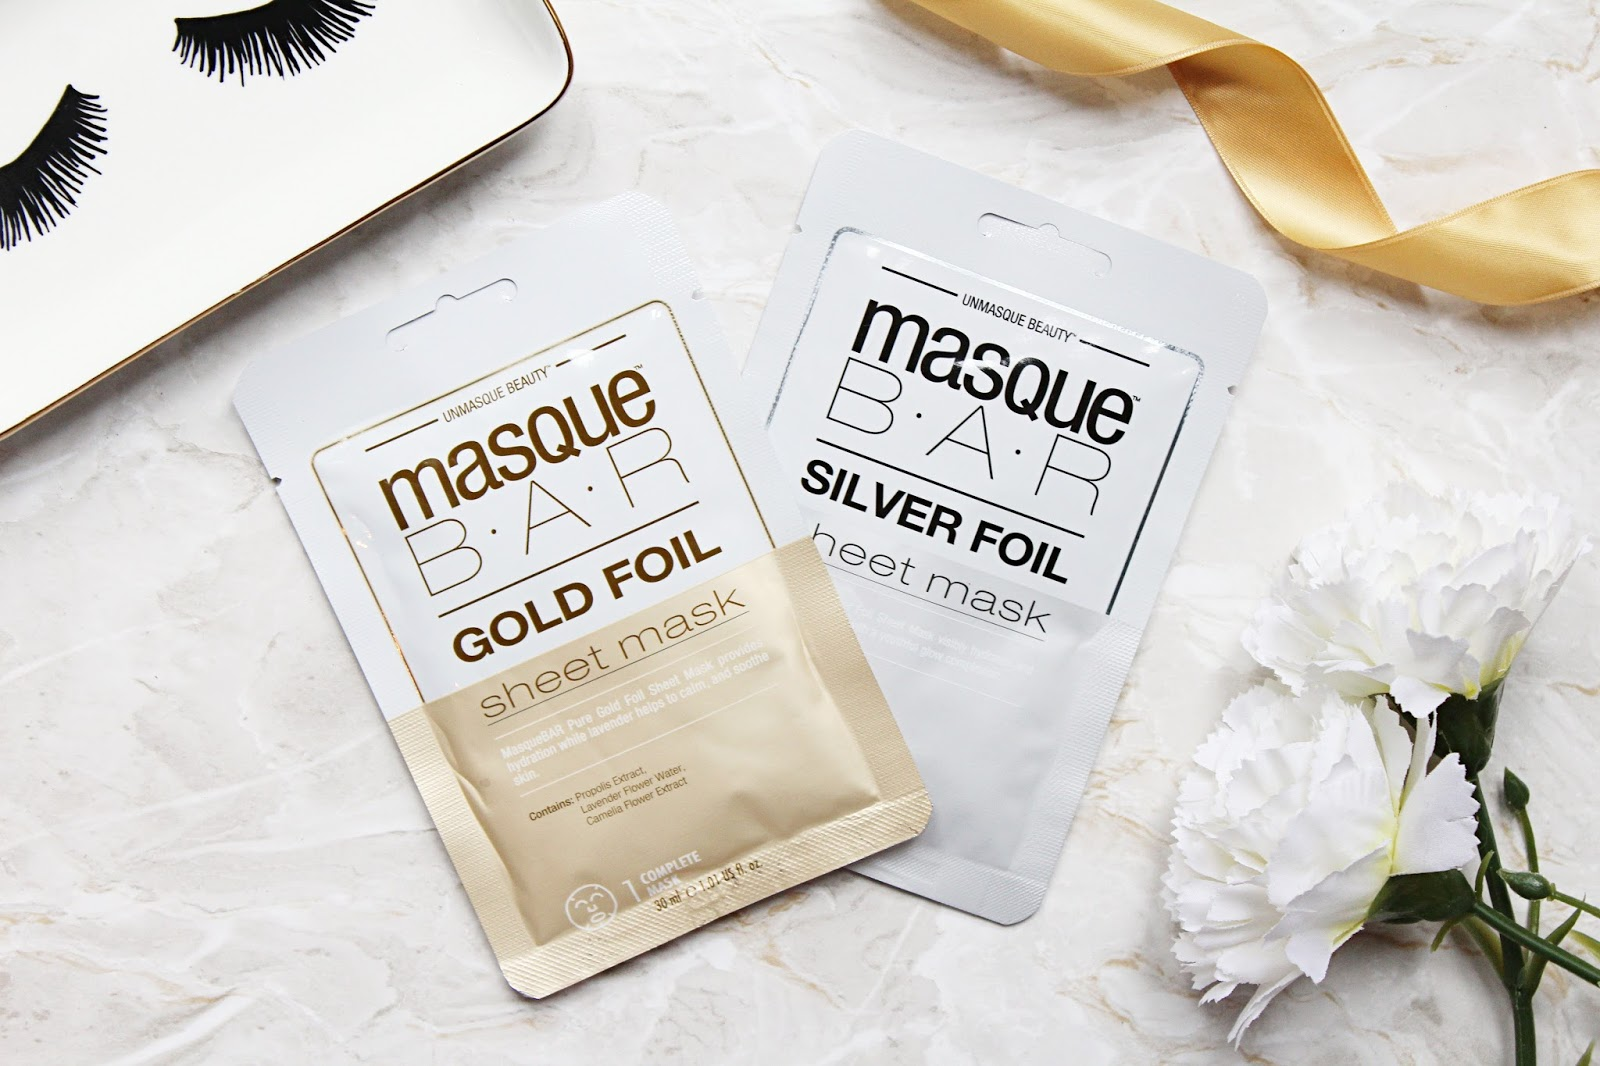 MasqueBAR Foil Sheet Masks